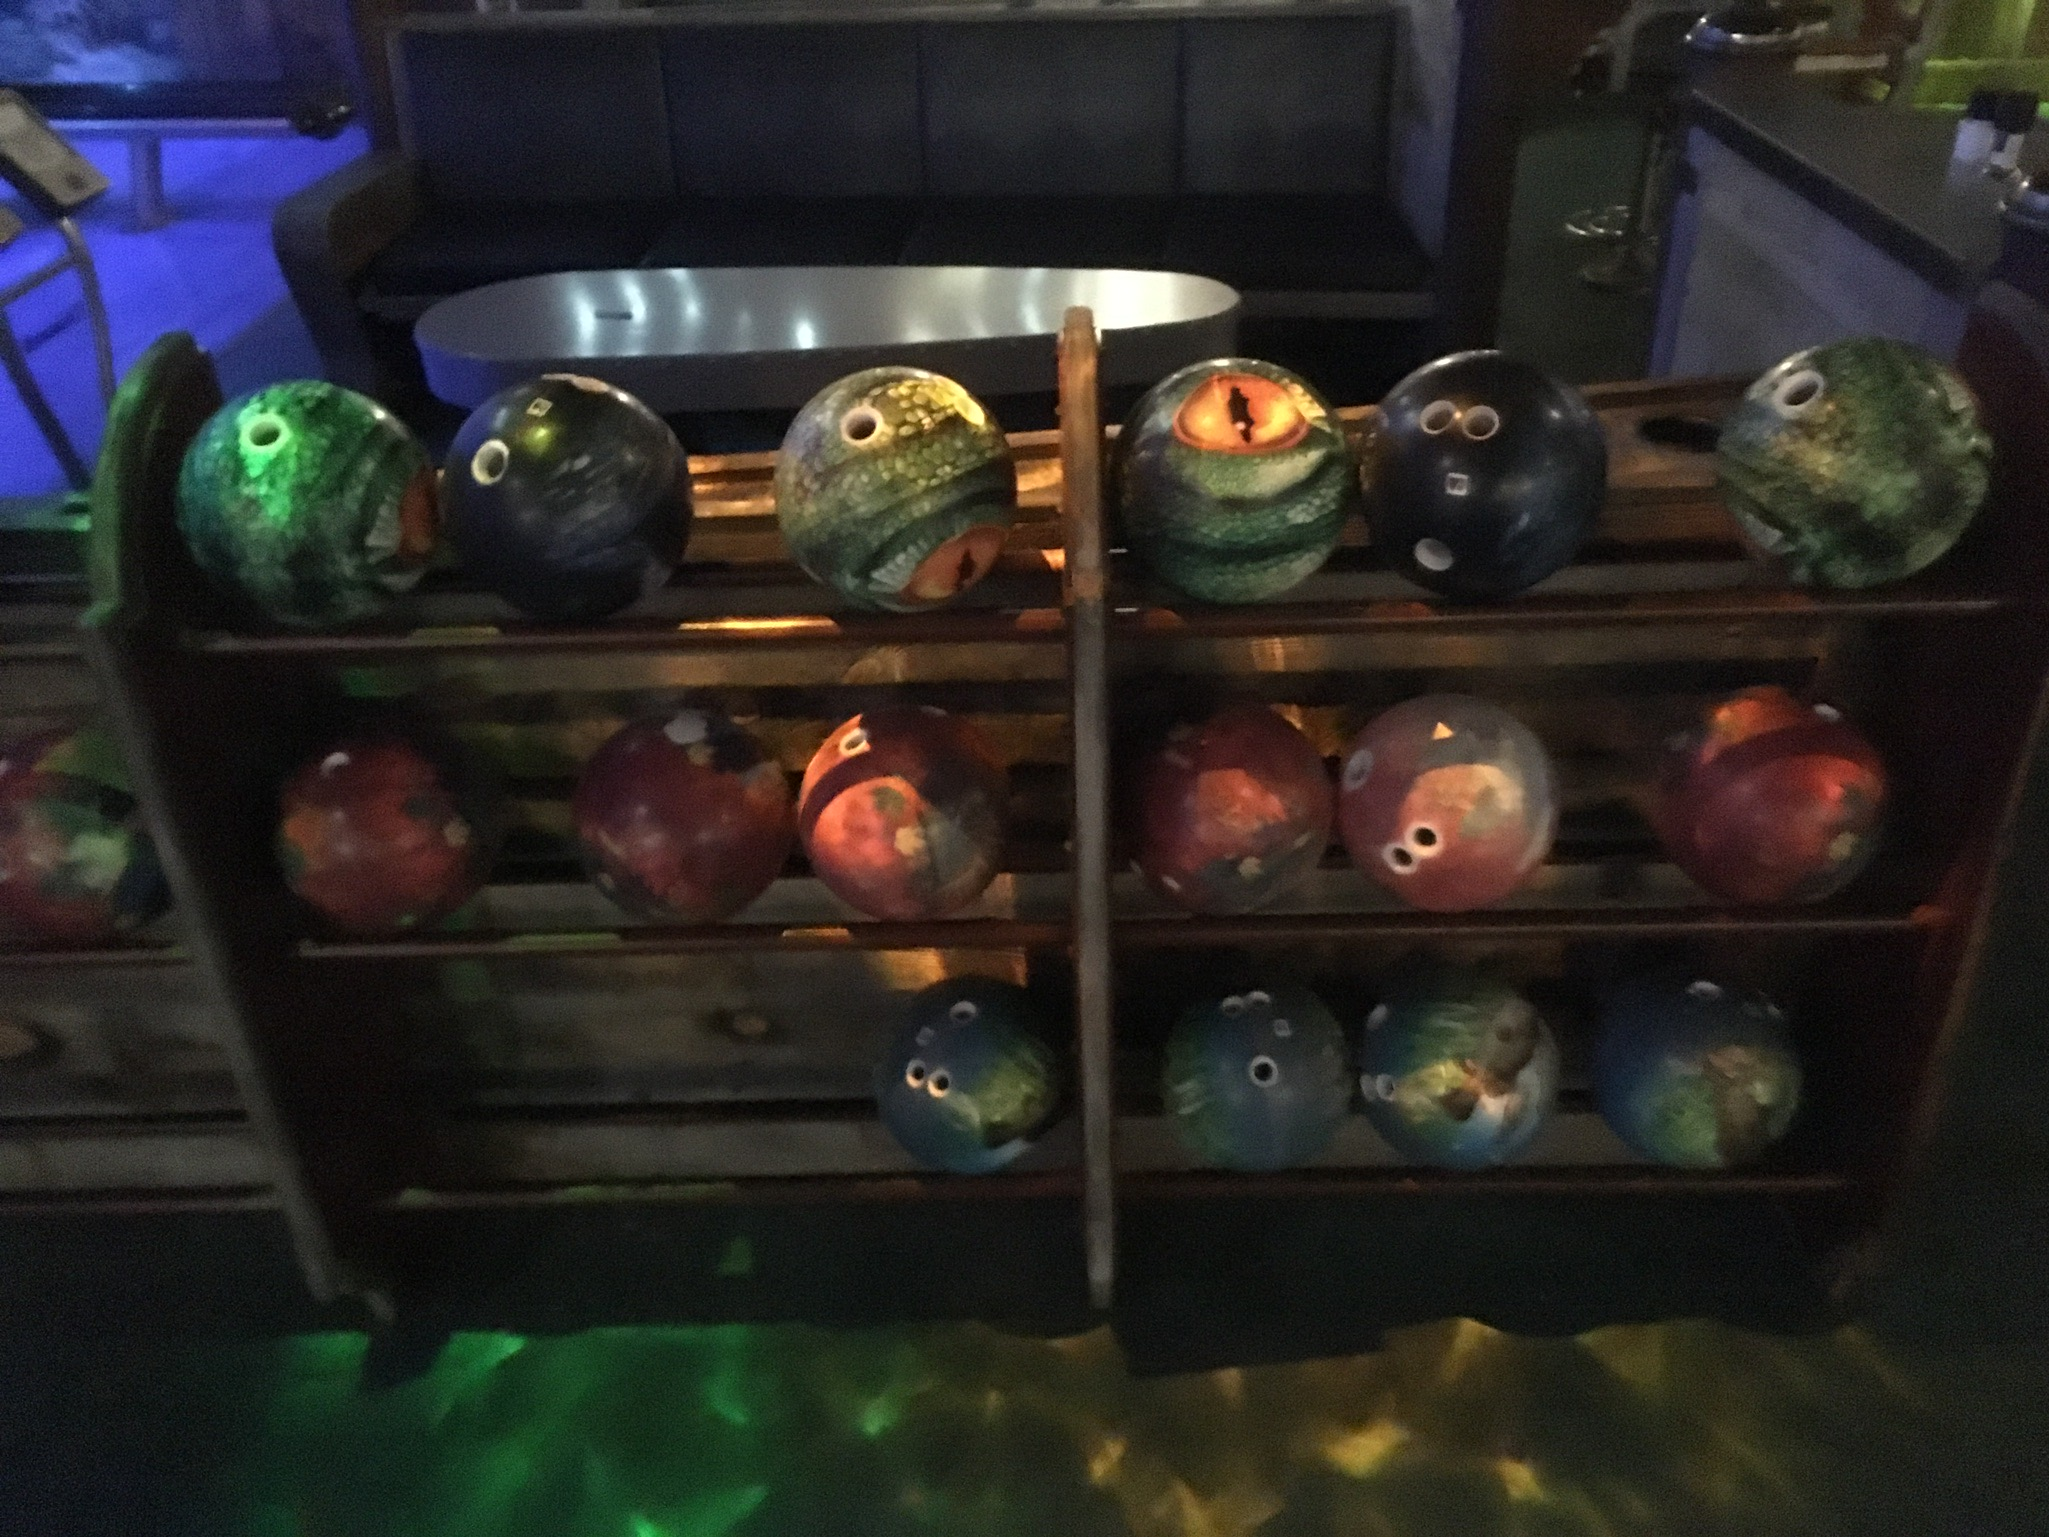 Even the balls are themed!